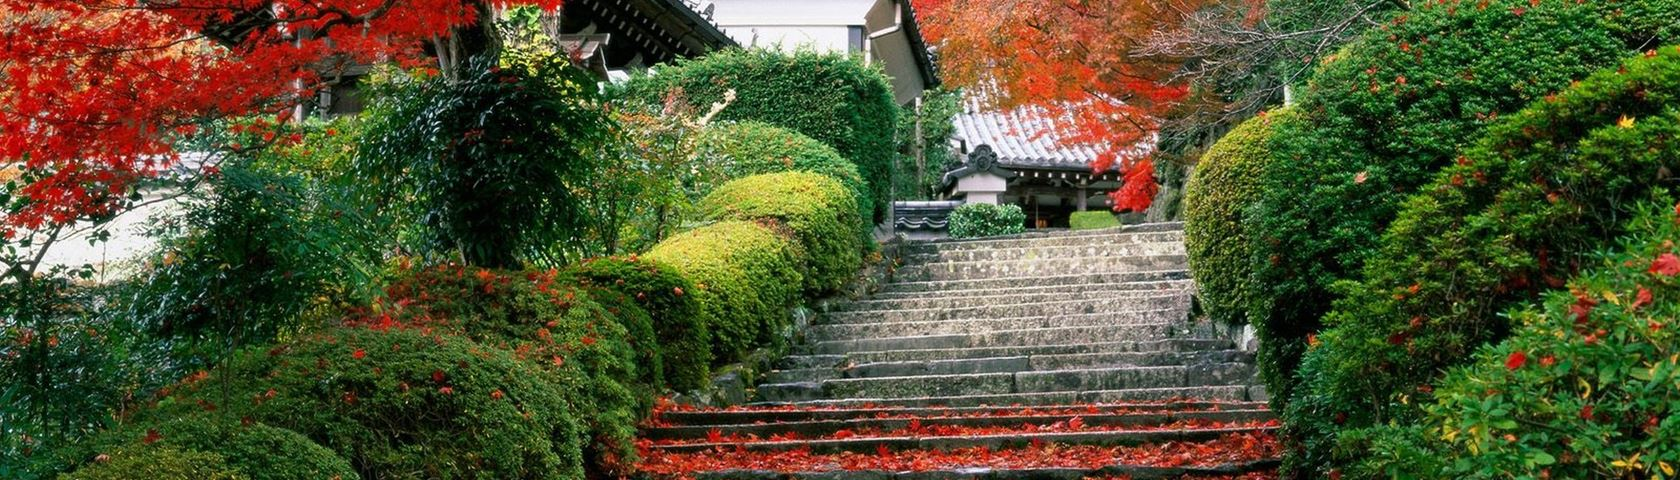 Garden Stairs in Japan